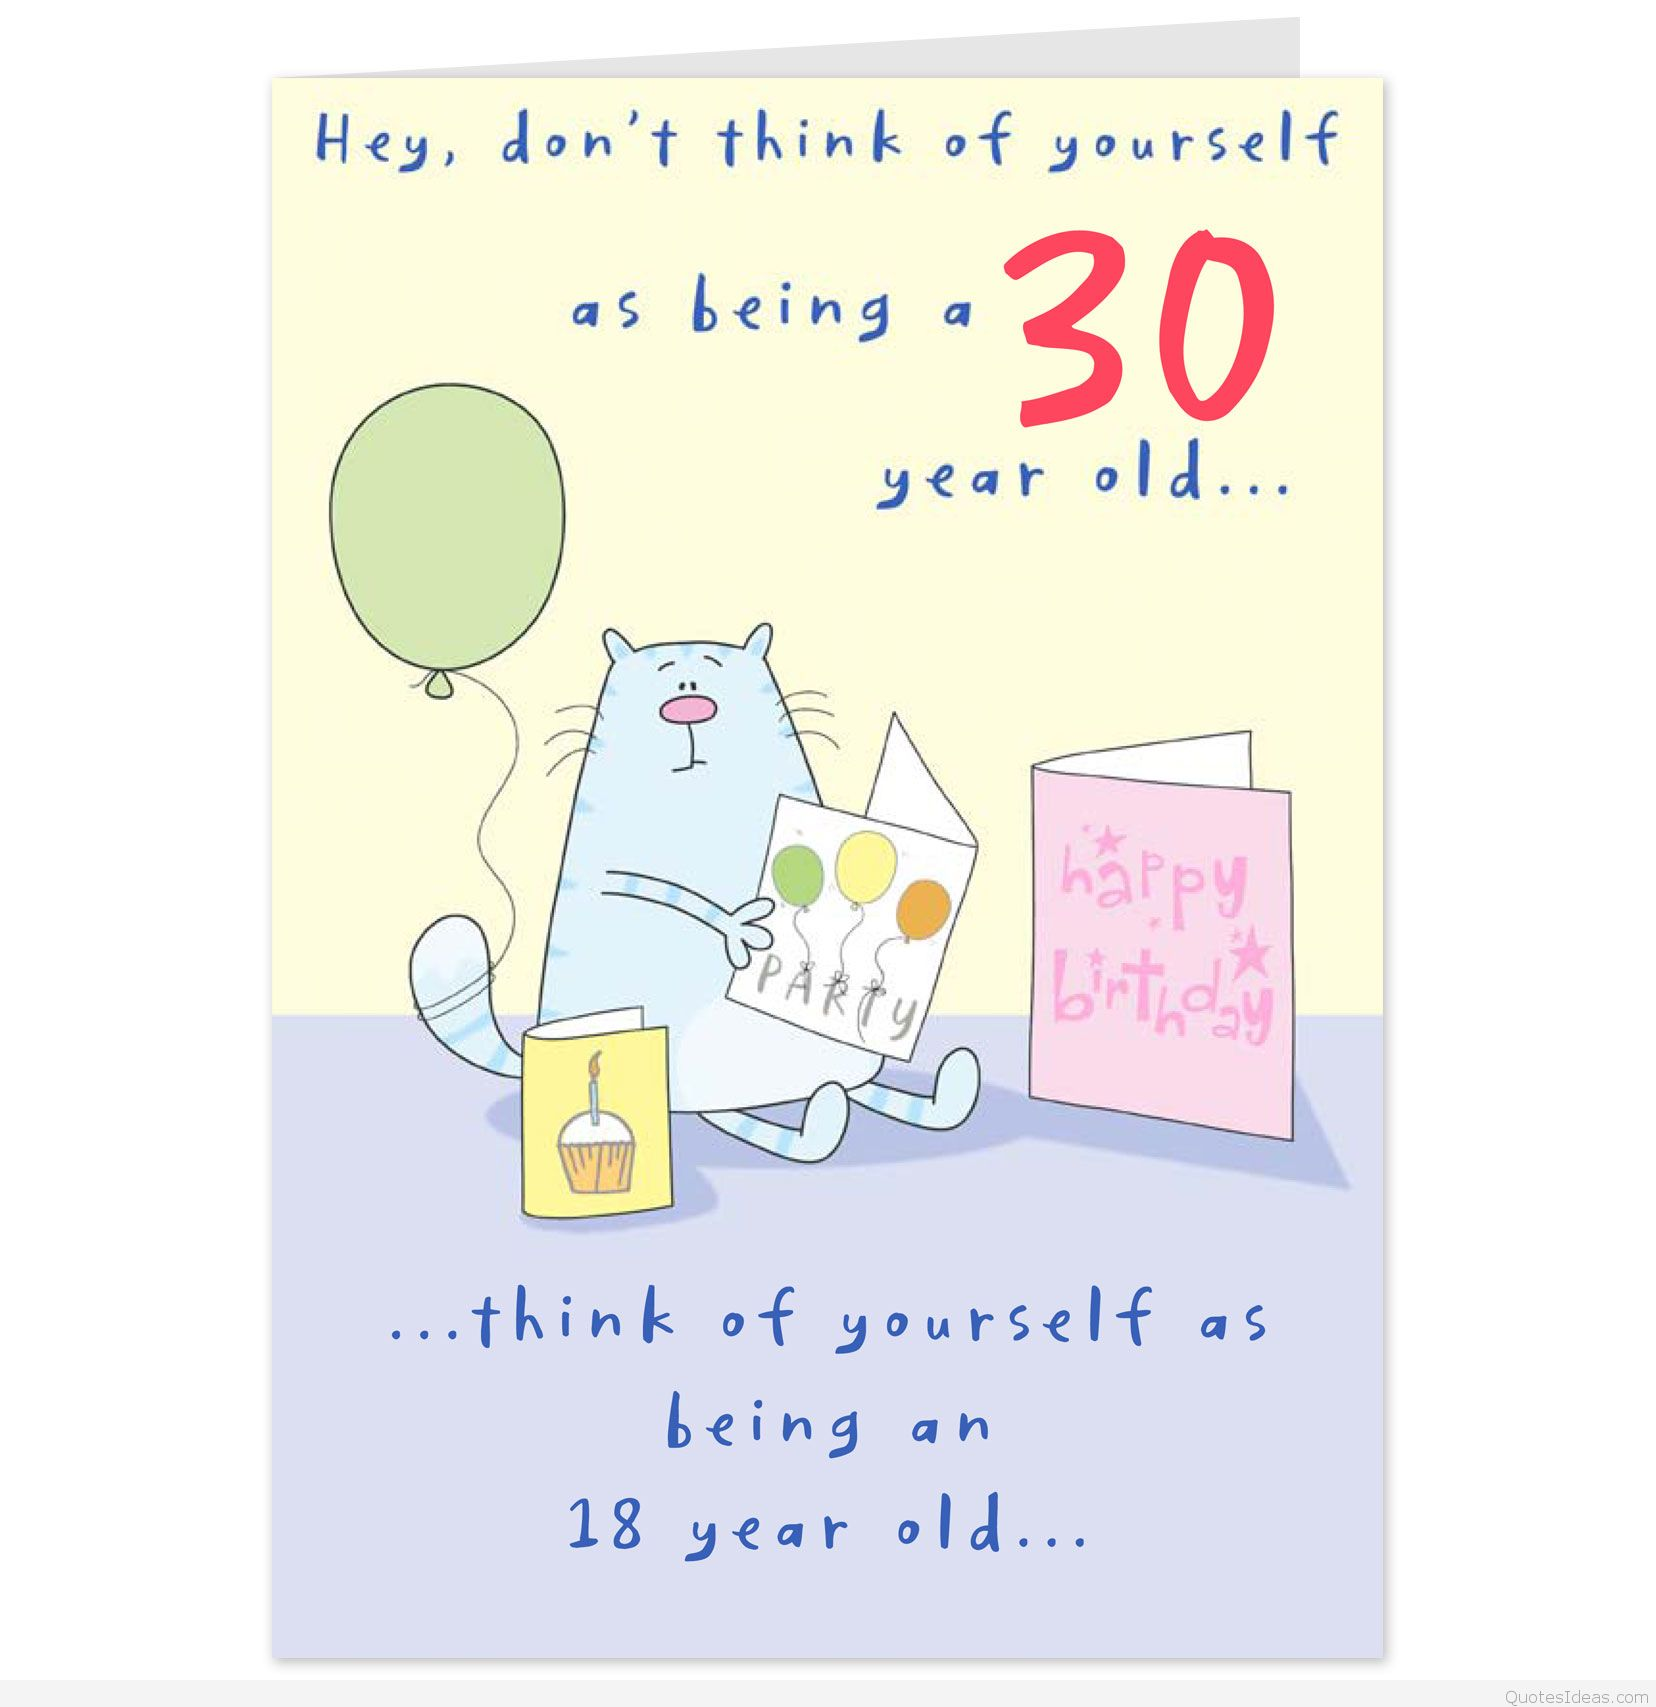 funny birthday card comments ; 4-year-old-birthday-card-sayings-8-year-old-birthday-card-sayings-to-get-ideas-how-to-make-your-own-birthday-card-design-1